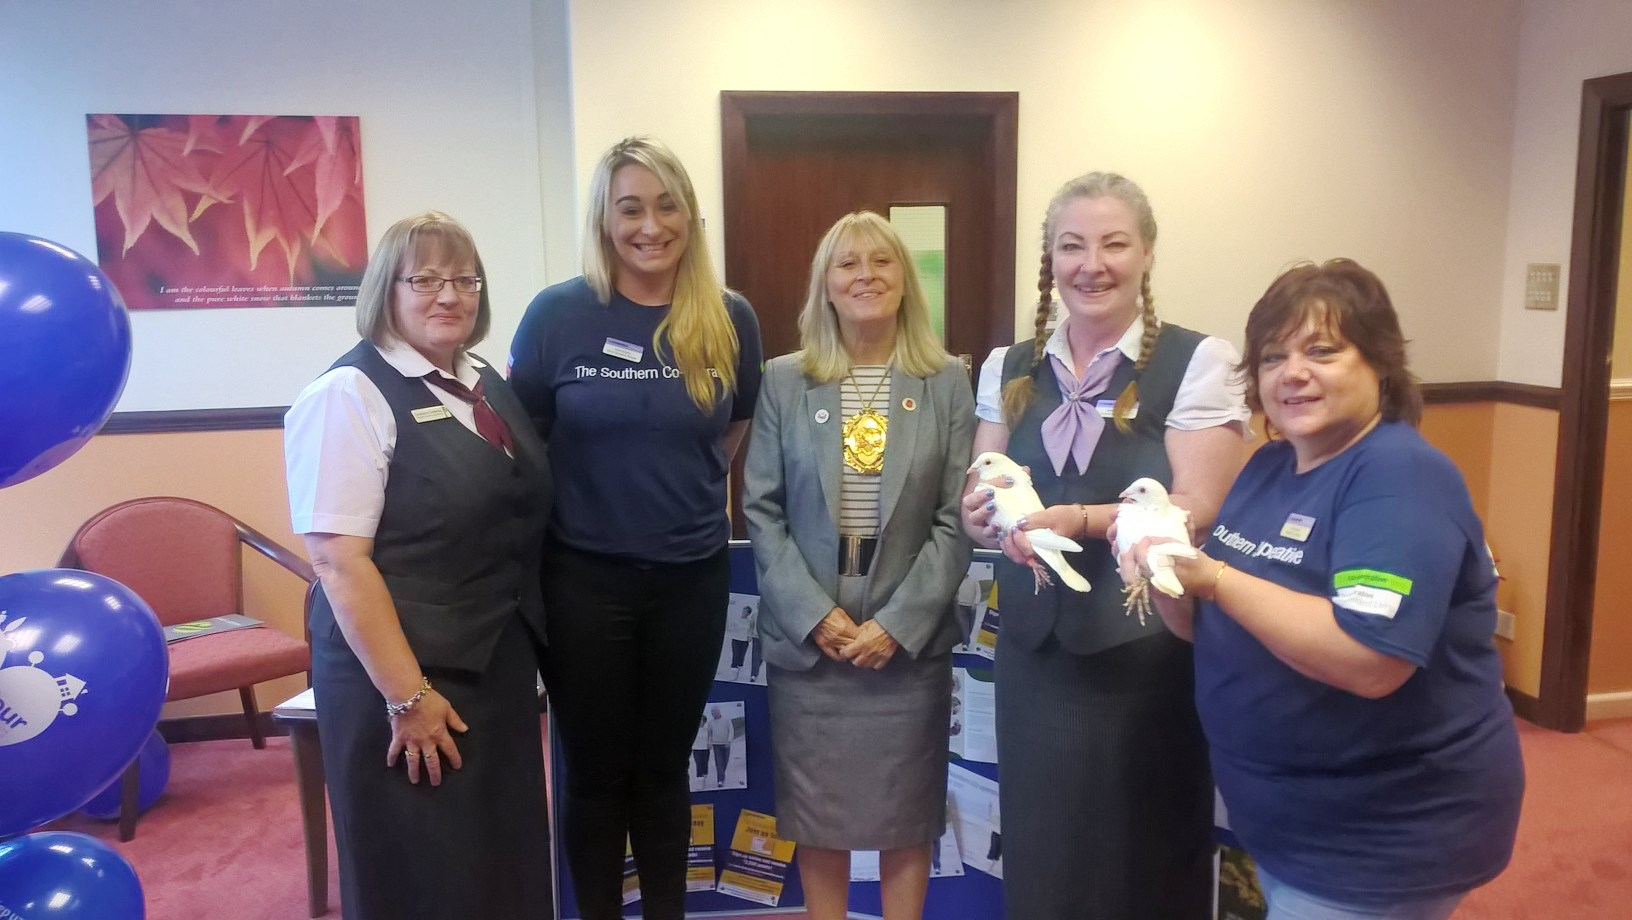 The Southern Co-operative Funeralcare colleagues with the Mayor of Rushmoor, Councillor Jacqui Vosper. L-R: Connie Sweeney, Claire McGinty, the Mayor of Rushmoor, Councillor Jacqui Vosper, Debs Gulliford and Tracey Beale.